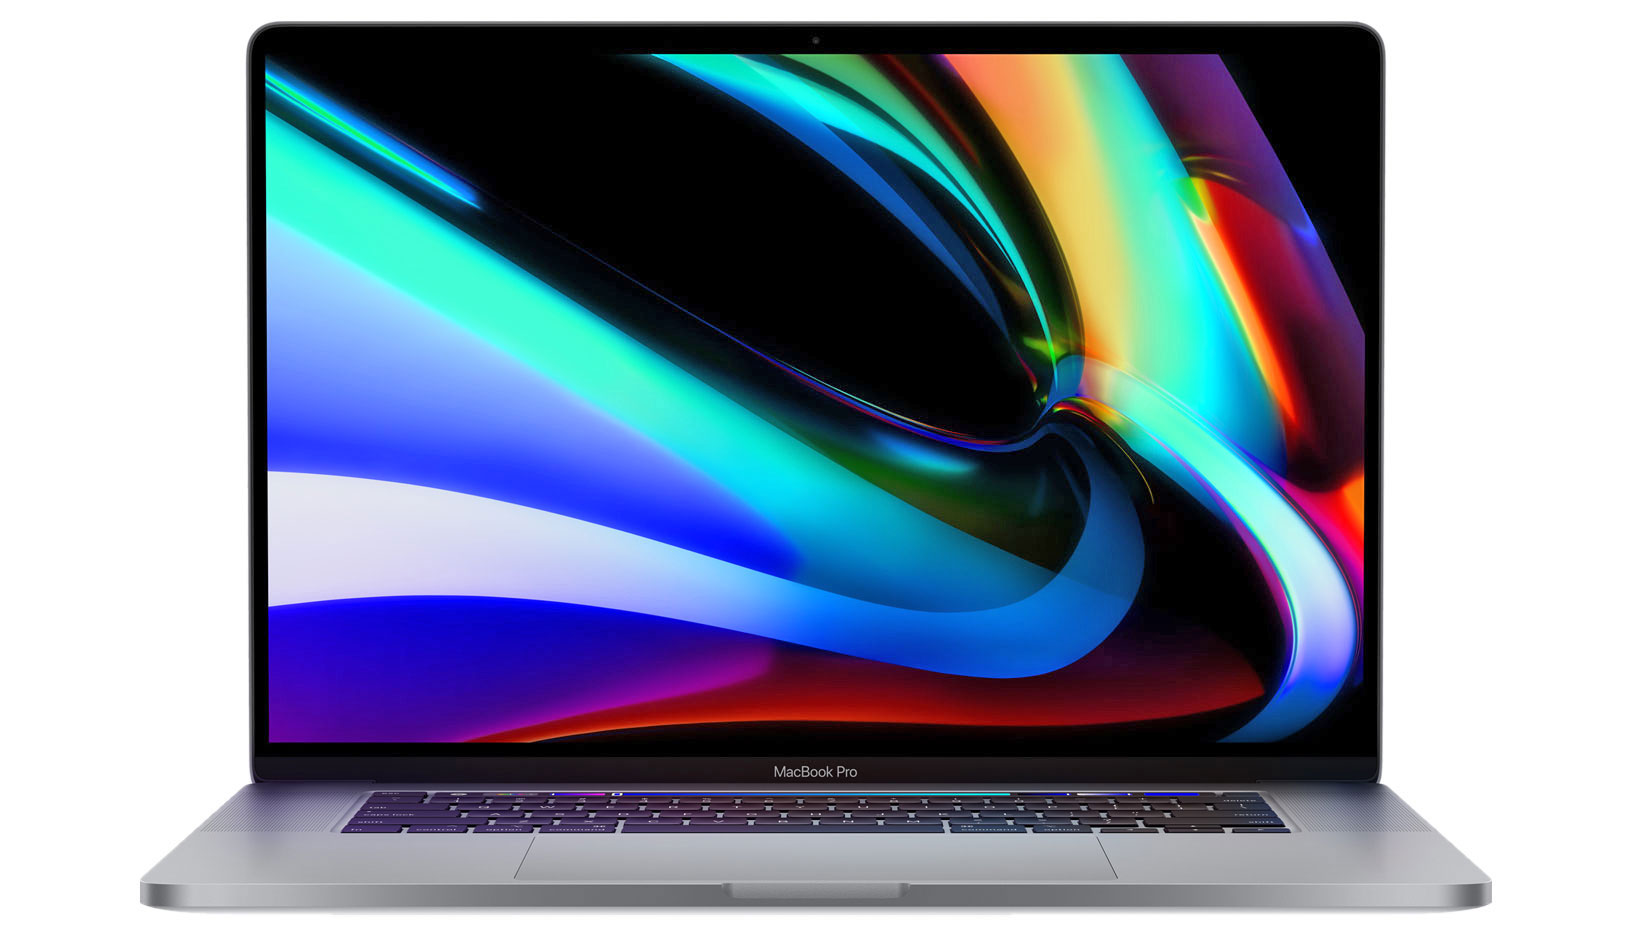 https://www.macfreak.nl/modules/news/images/zArt.MacBookPro16inch2019.jpg